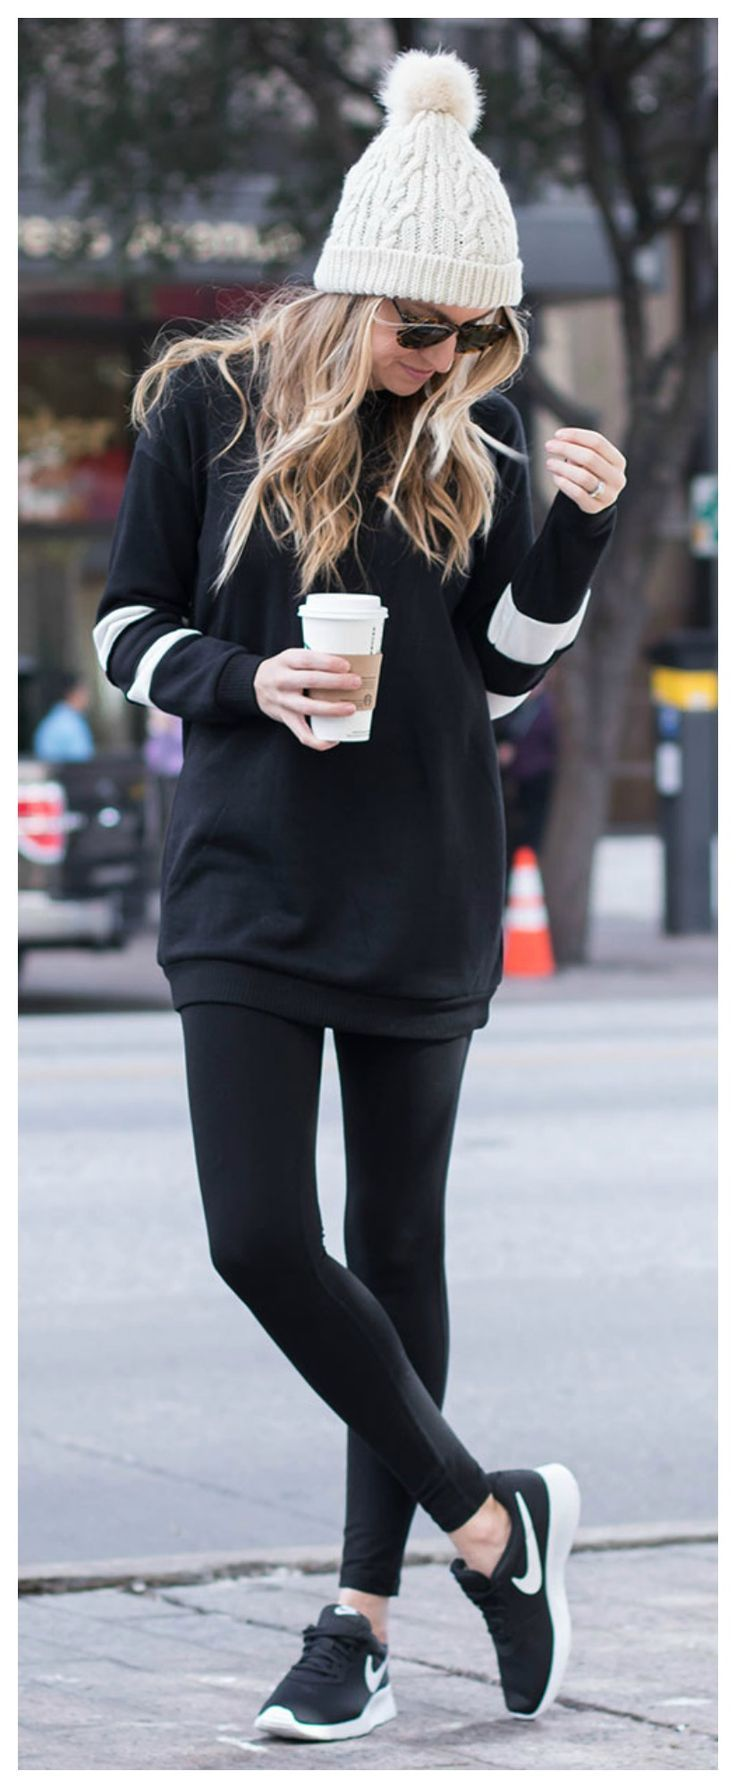 63a68b4eeb4d The perfect winter outfit! Black leggings, tunic sweatshirt, beanie, and  Nikes. Athleisure Look- Life By Lee